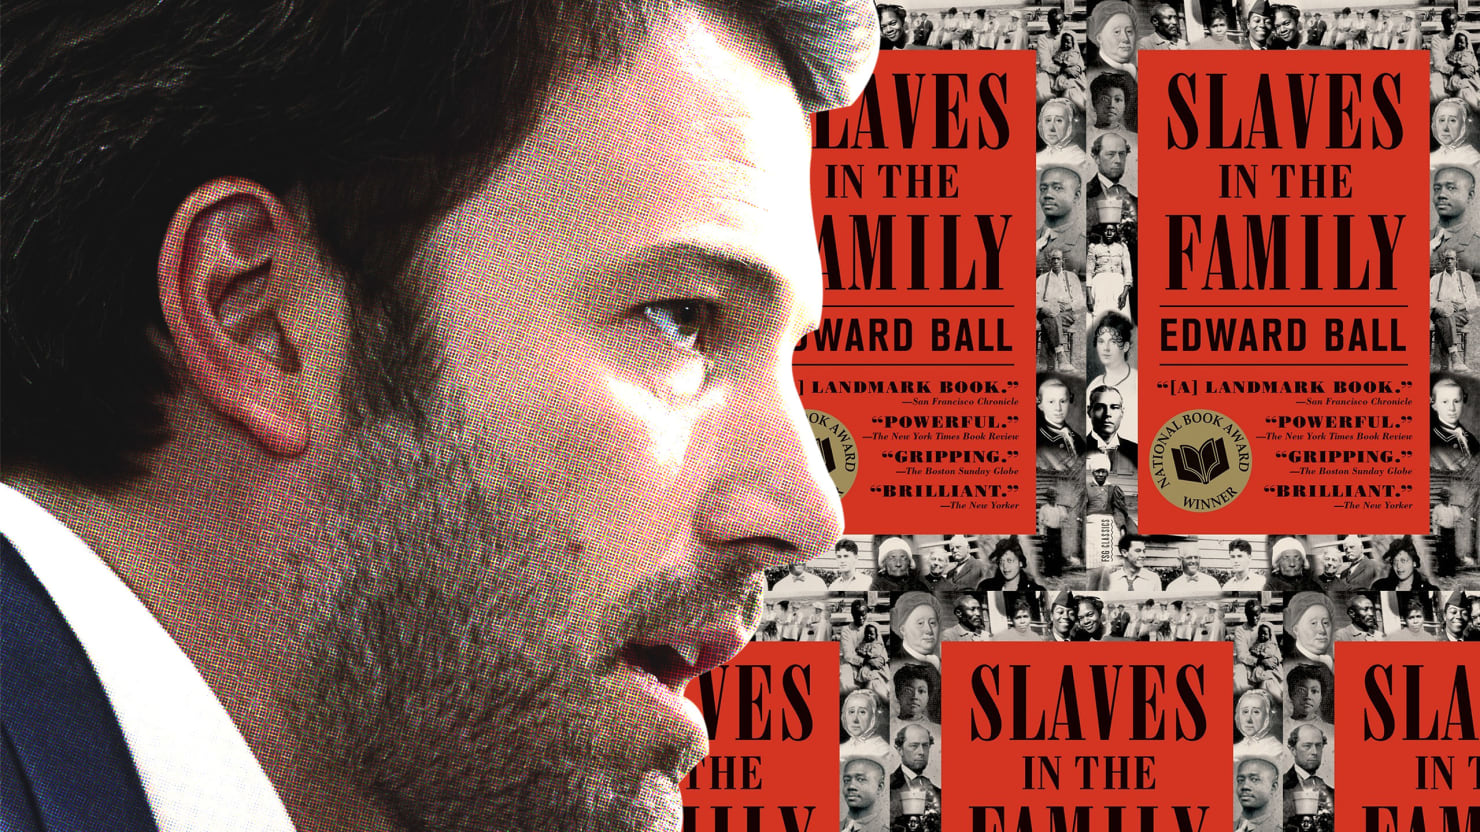 If You Only Read One Book About the Legacy of Slavery: 'Slaves in the Family'